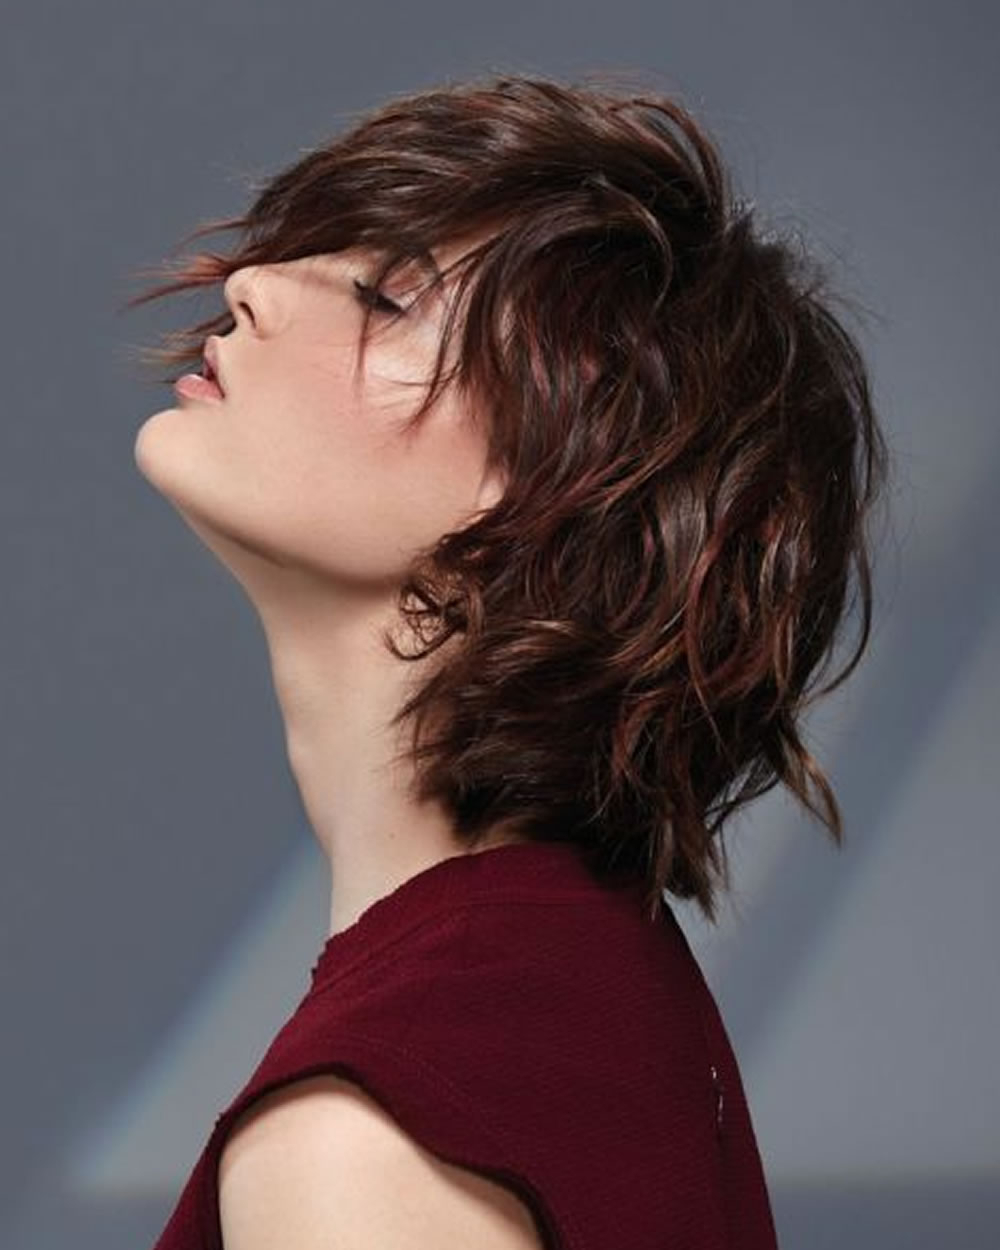 Hair Cuts : Bob Haircuts For Round Faces And Fine Hair Thick Female Within Womens Short Haircuts For Round Faces (View 5 of 25)